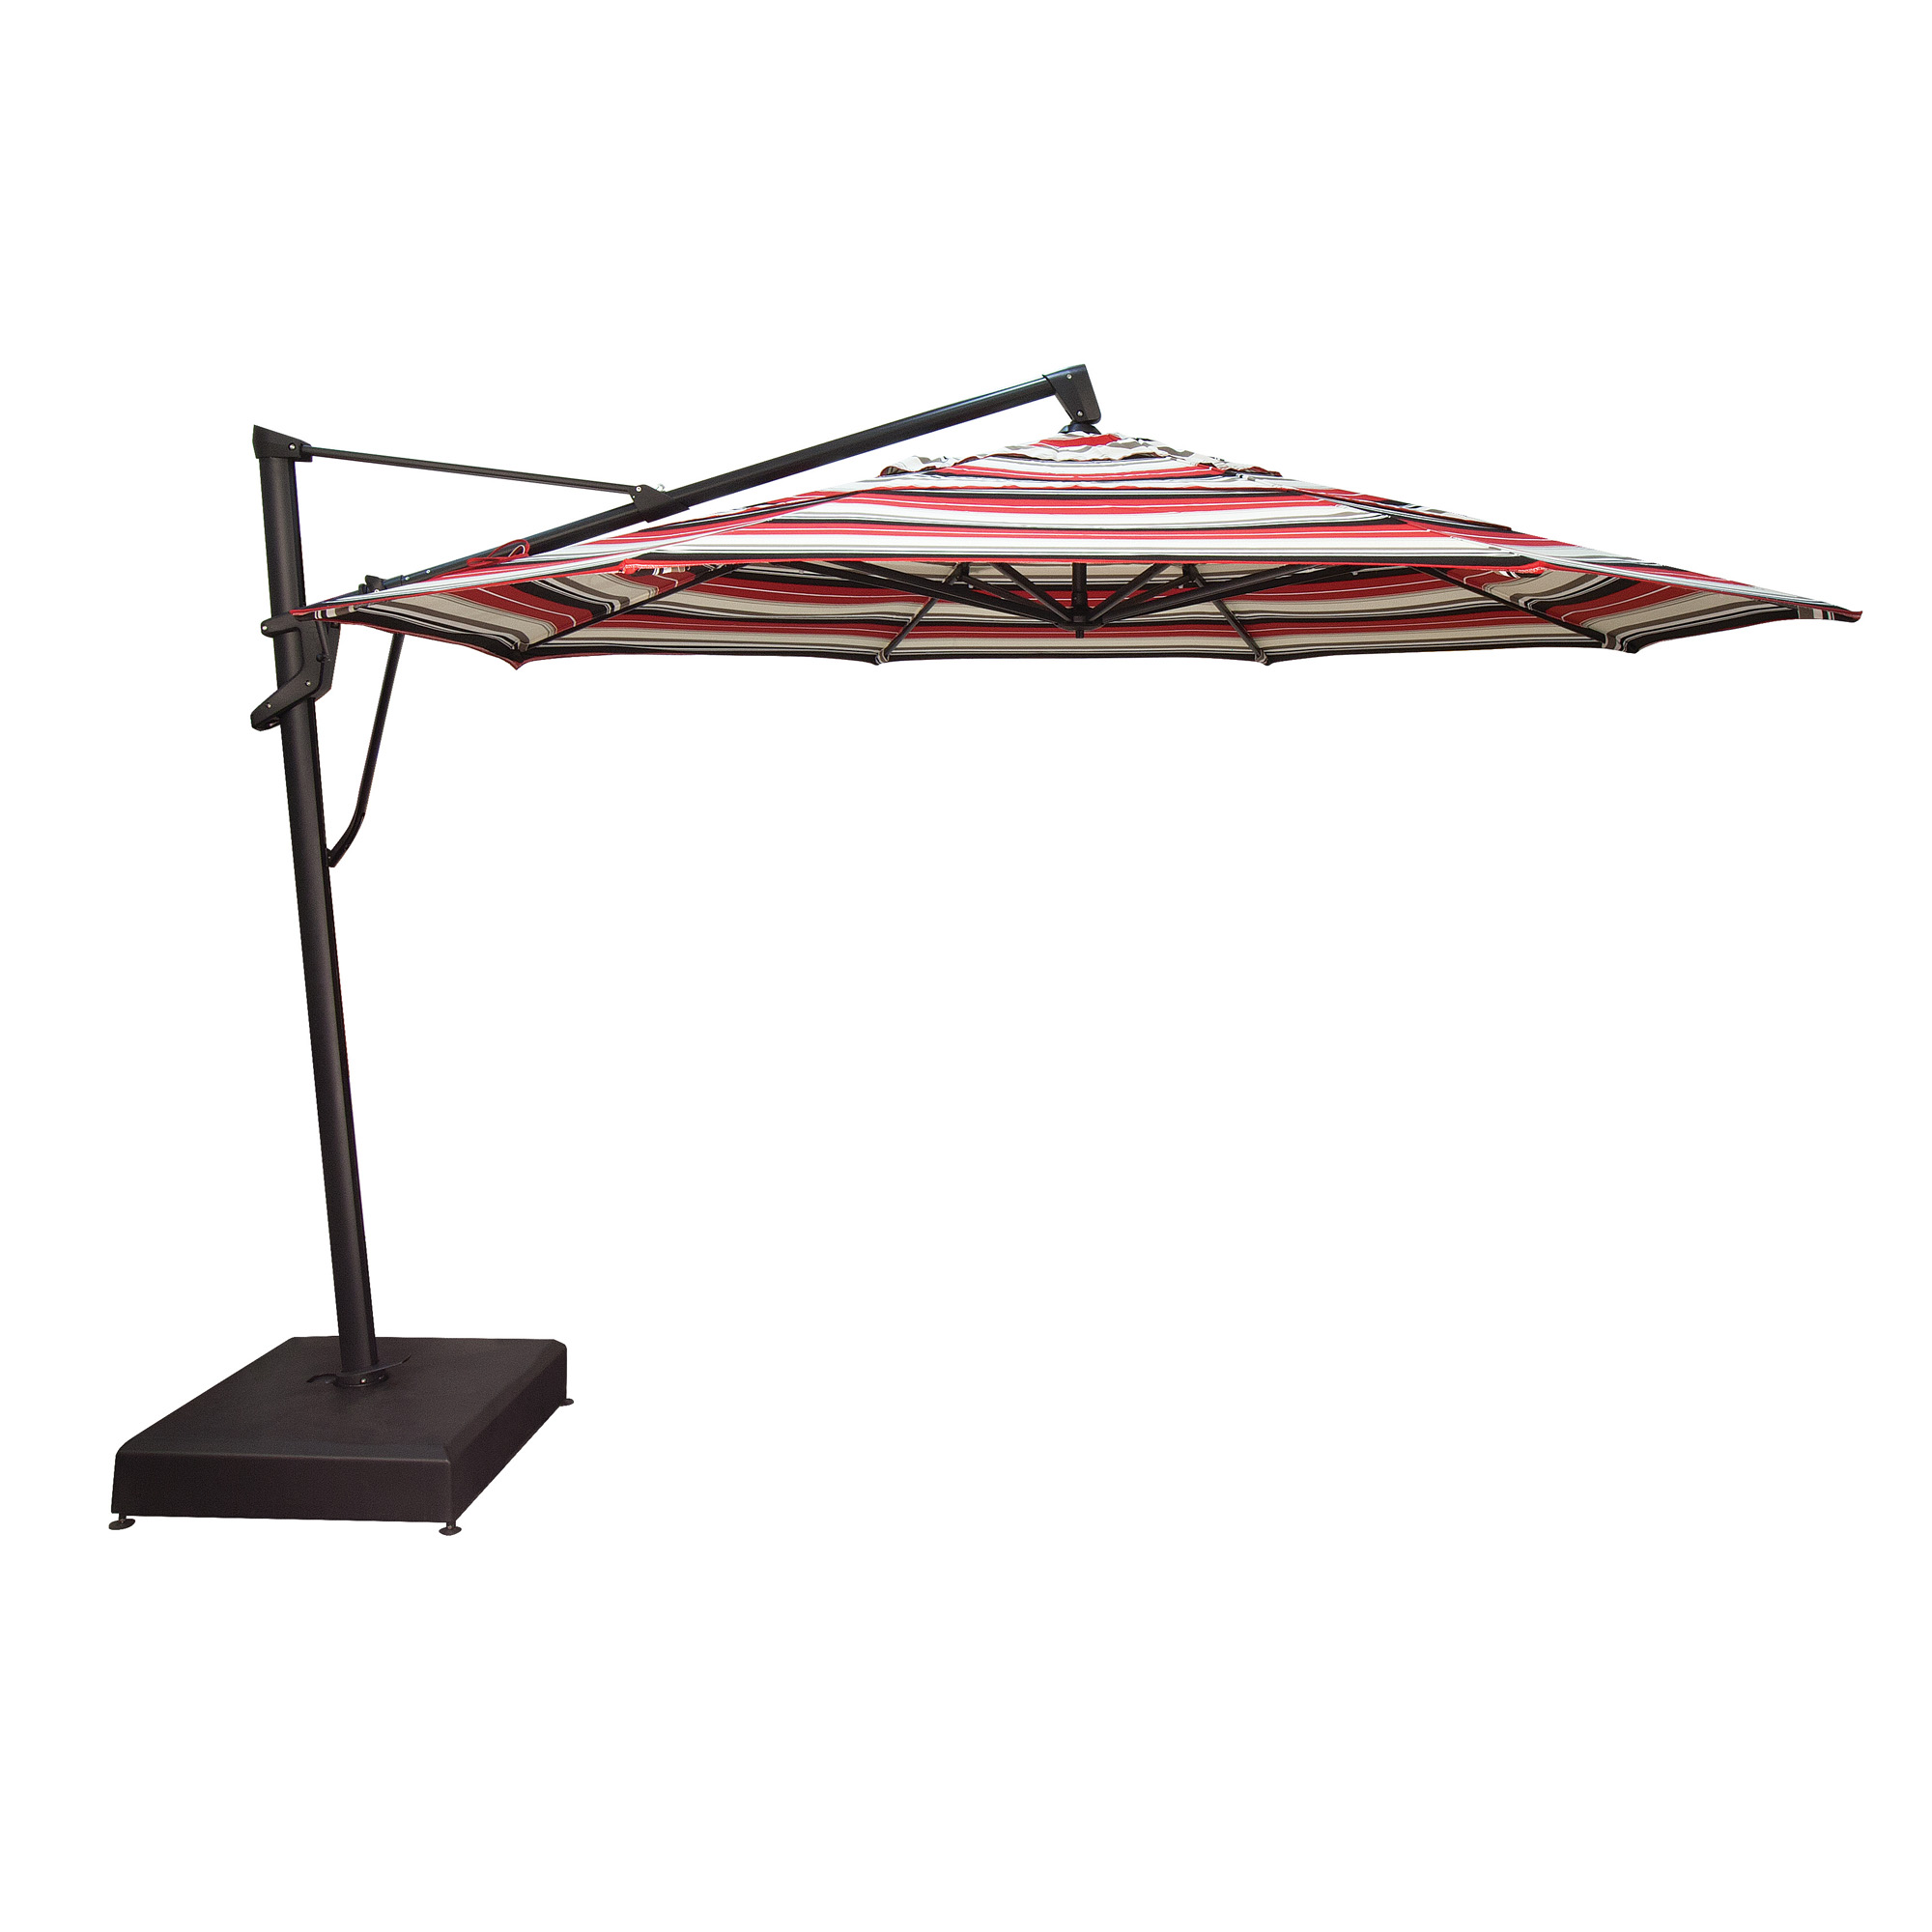 ... Patio Umbrella 13 ft. Plus Side Post. ?. AKZ ...  sc 1 st  Patio Furniture u0026 Barbecues at Sun Country & Patio Umbrella 13 ft. Plus Side Post - Umbrellas at Sun Country